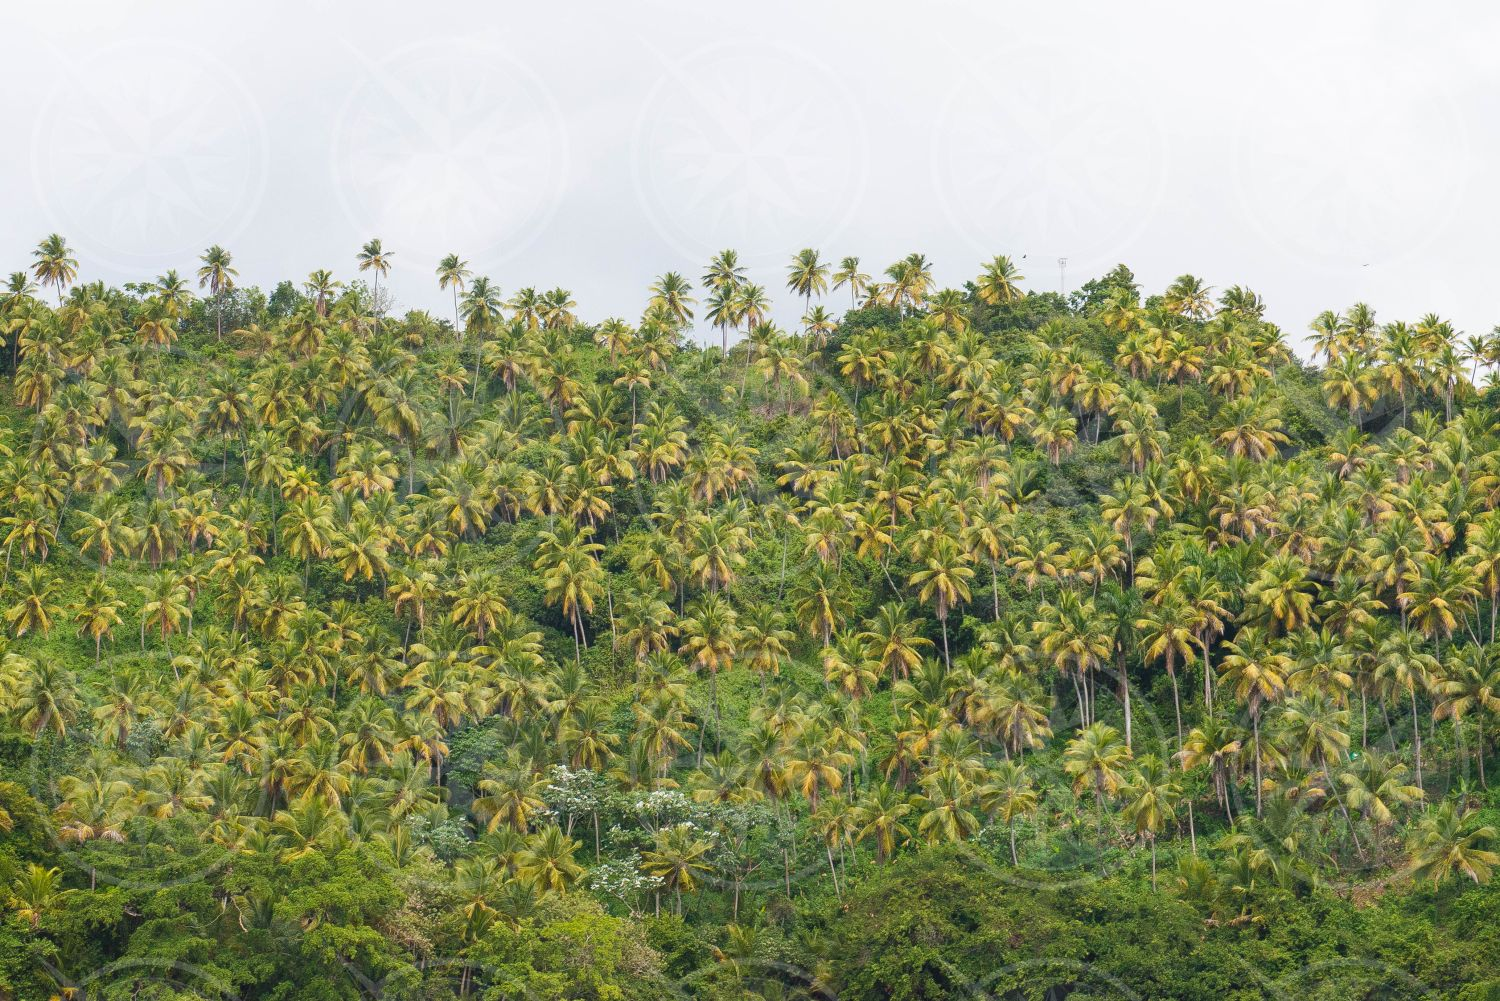 Coconut palm trees on a hill